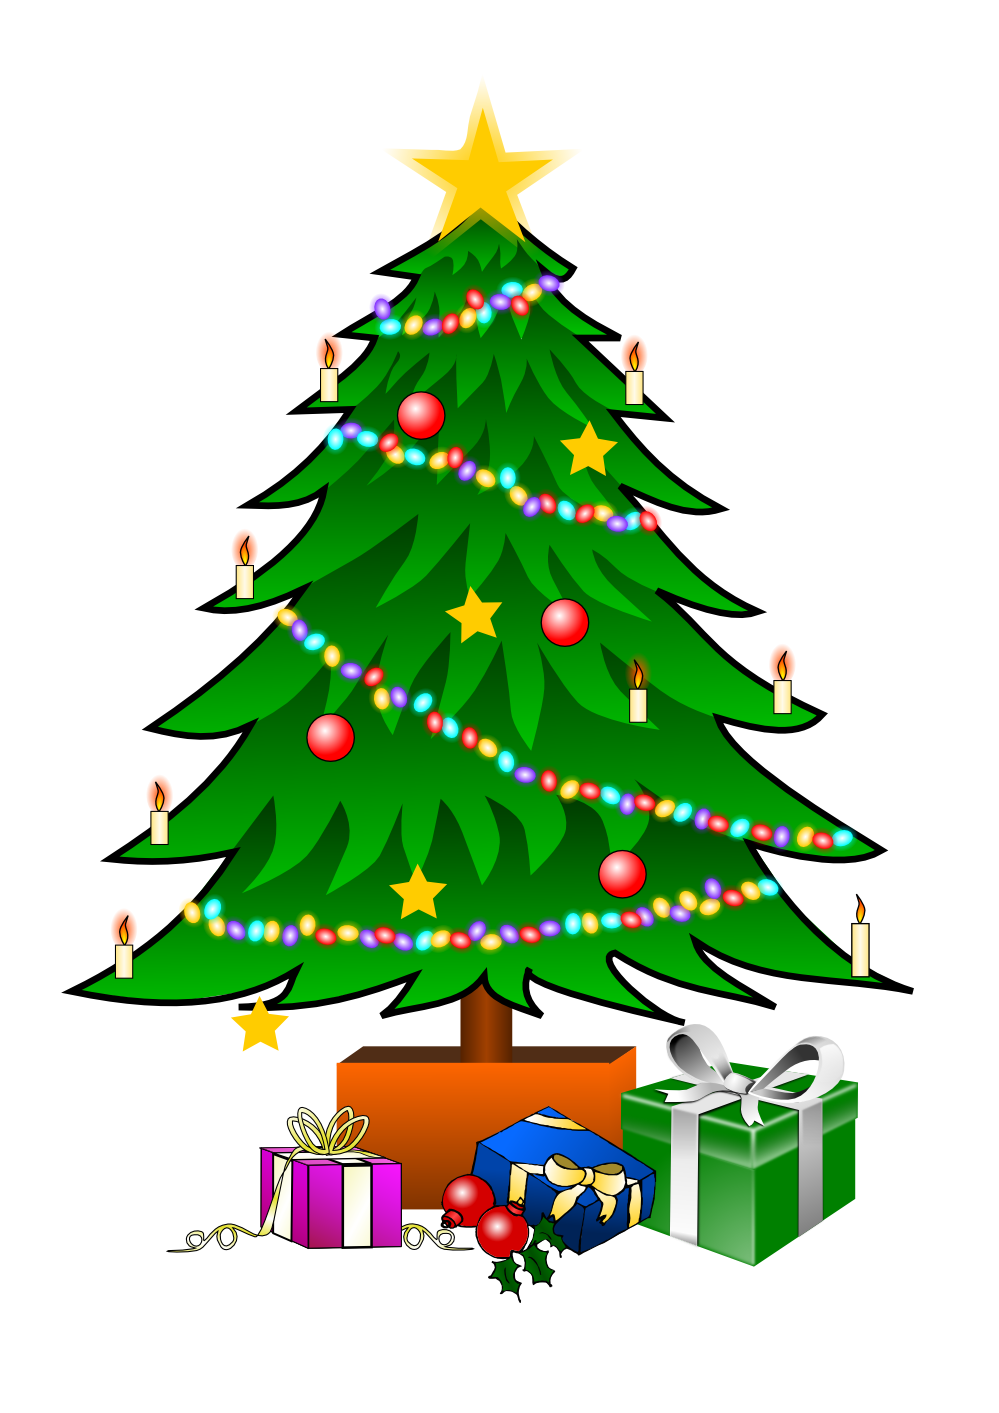 This nice Christmas tree with presents clip art can be